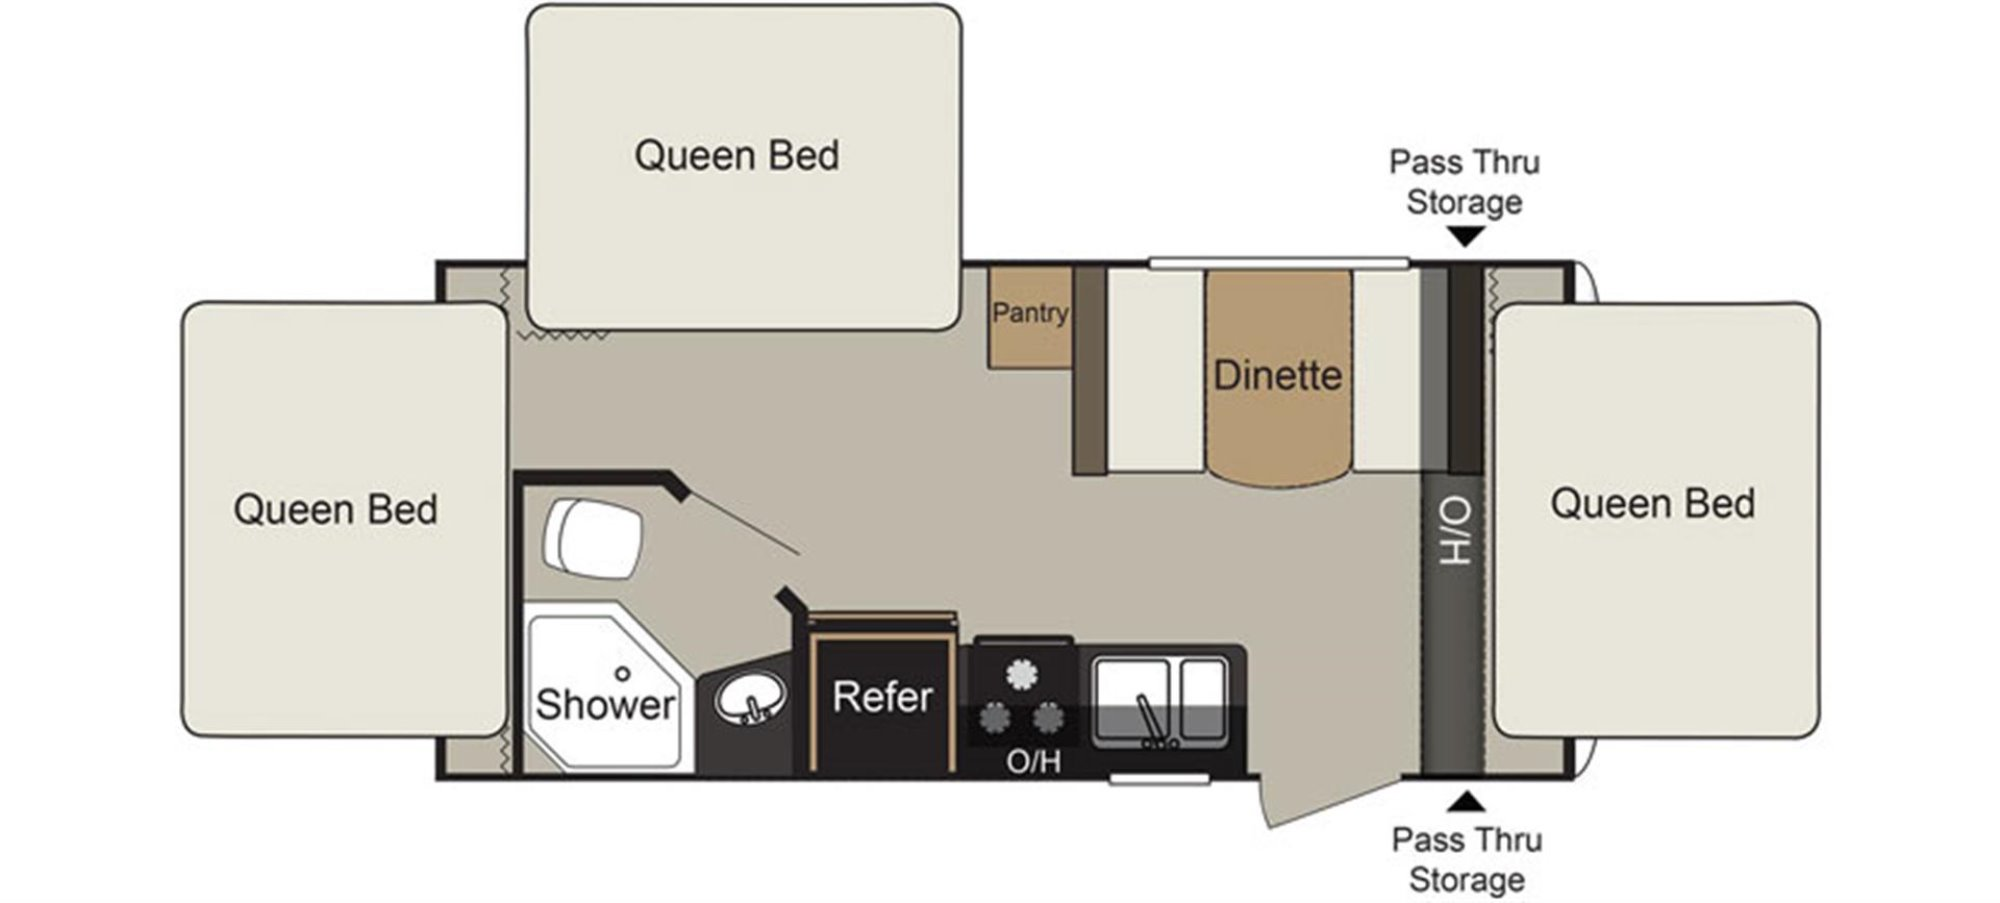 View Floor Plan for 2016 KEYSTONE PASSPORT 177EXP